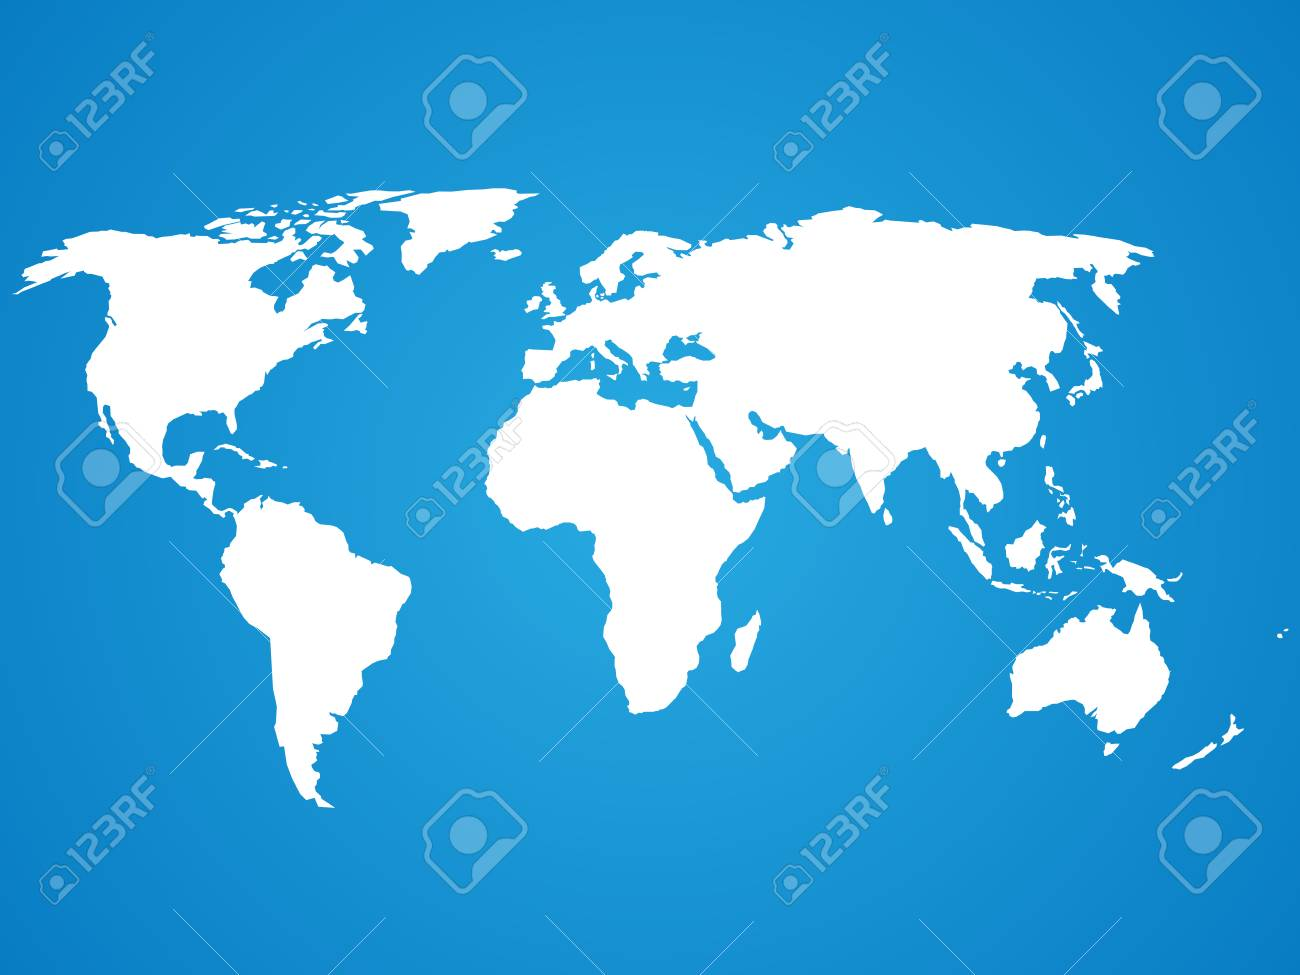 Simplified White World Map Silhouette On Blue Circular Gradient